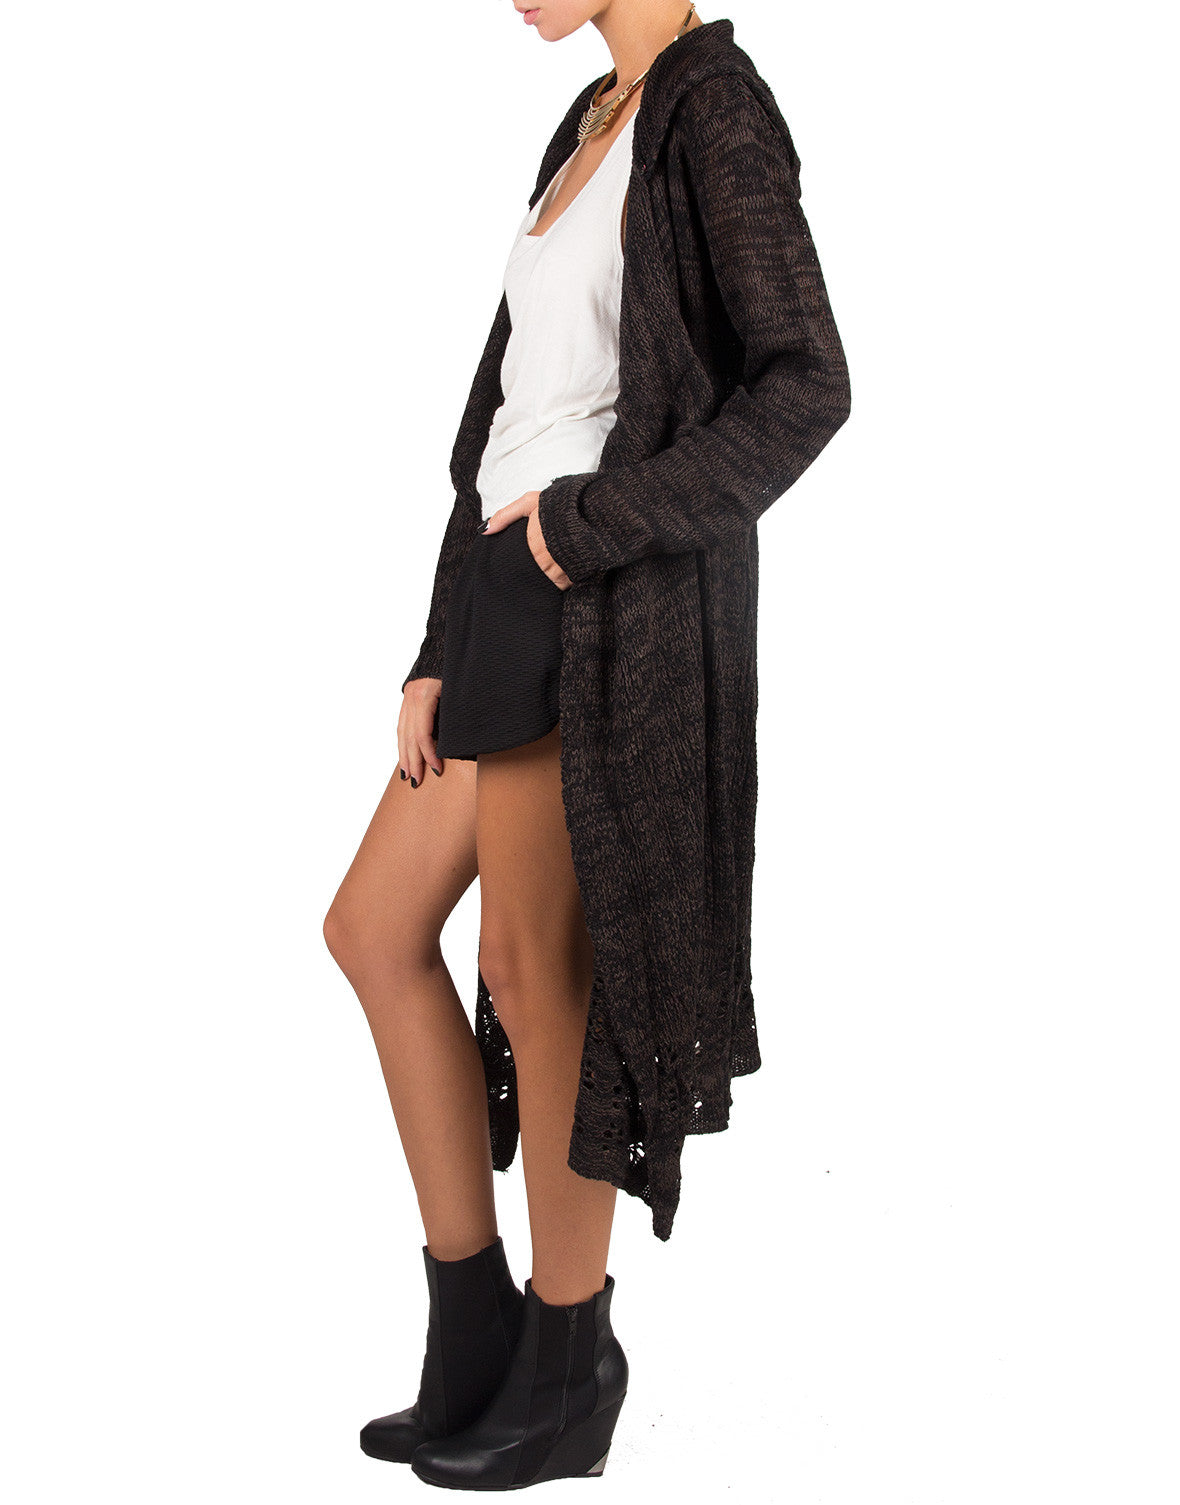 Long Holey Open Knit Cardigan - Black/Charcoal